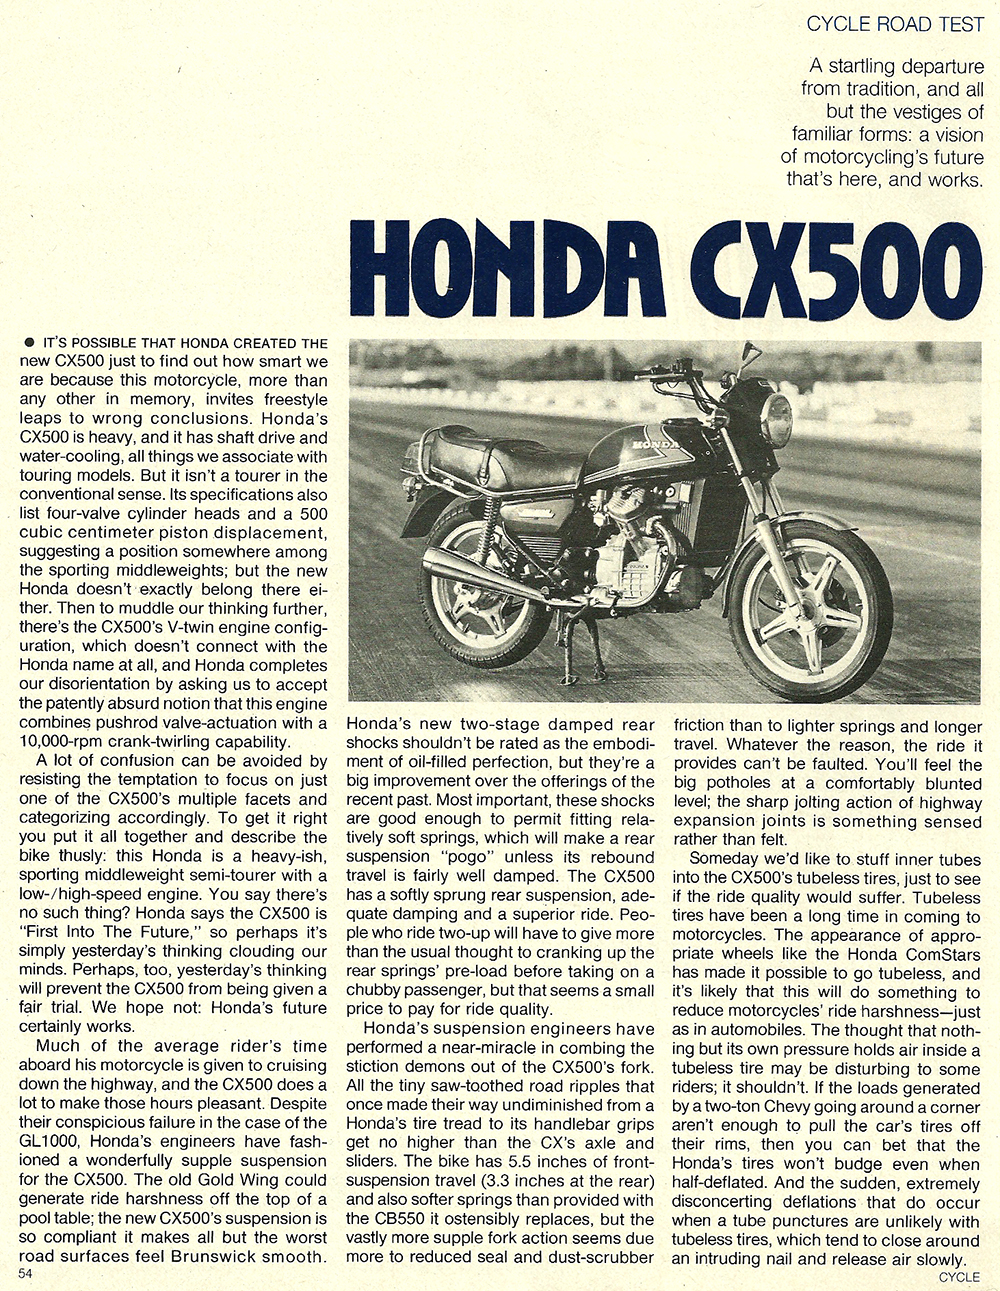 1978 Honda CX500 road test 01.jpg